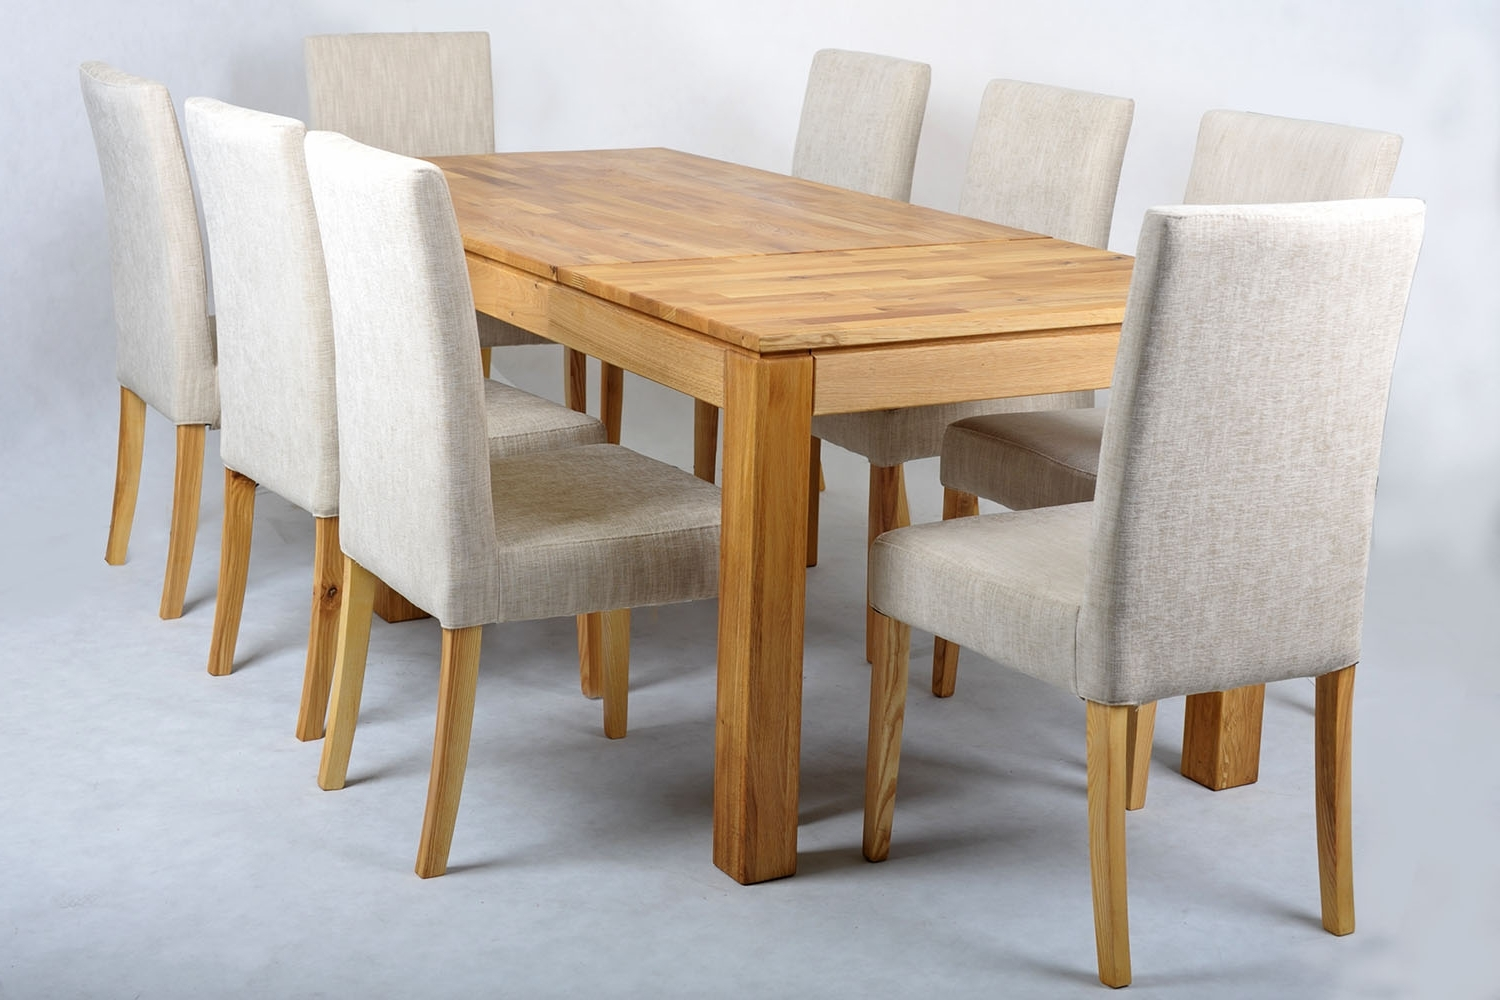 Most Popular Oak Extending Dining Table And Fabric Chairs Set Ivory Stainless Throughout Oak Extendable Dining Tables And Chairs (View 19 of 25)